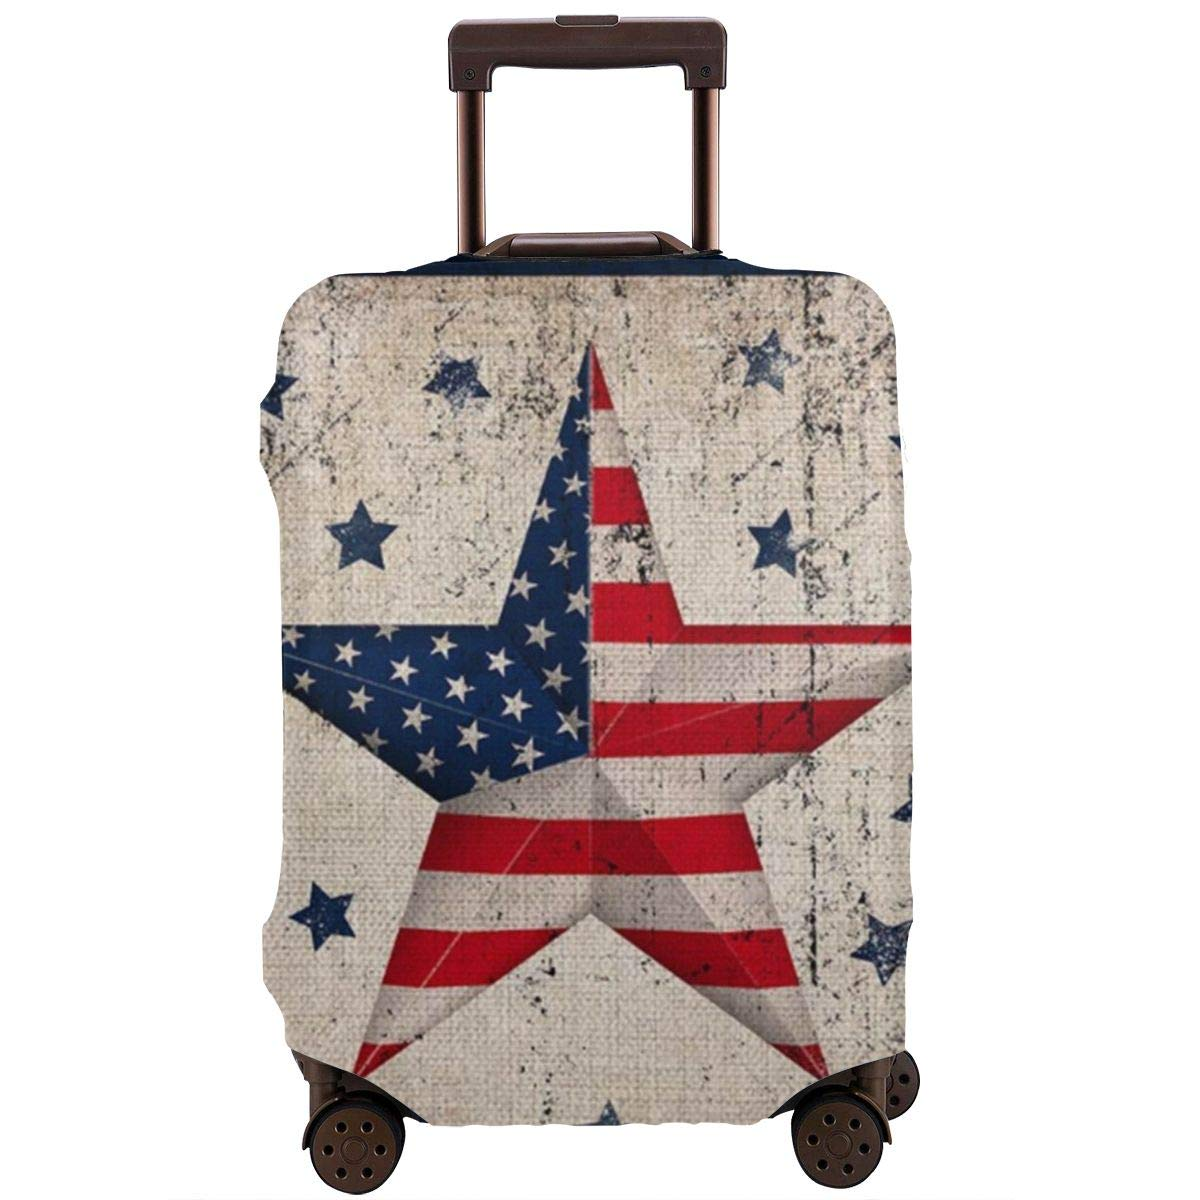 Luggage Cover Vintage Patriotic Star America Flag With Scattered Stars Protective Travel Trunk Case Elastic Luggage Suitcase Protector Cover